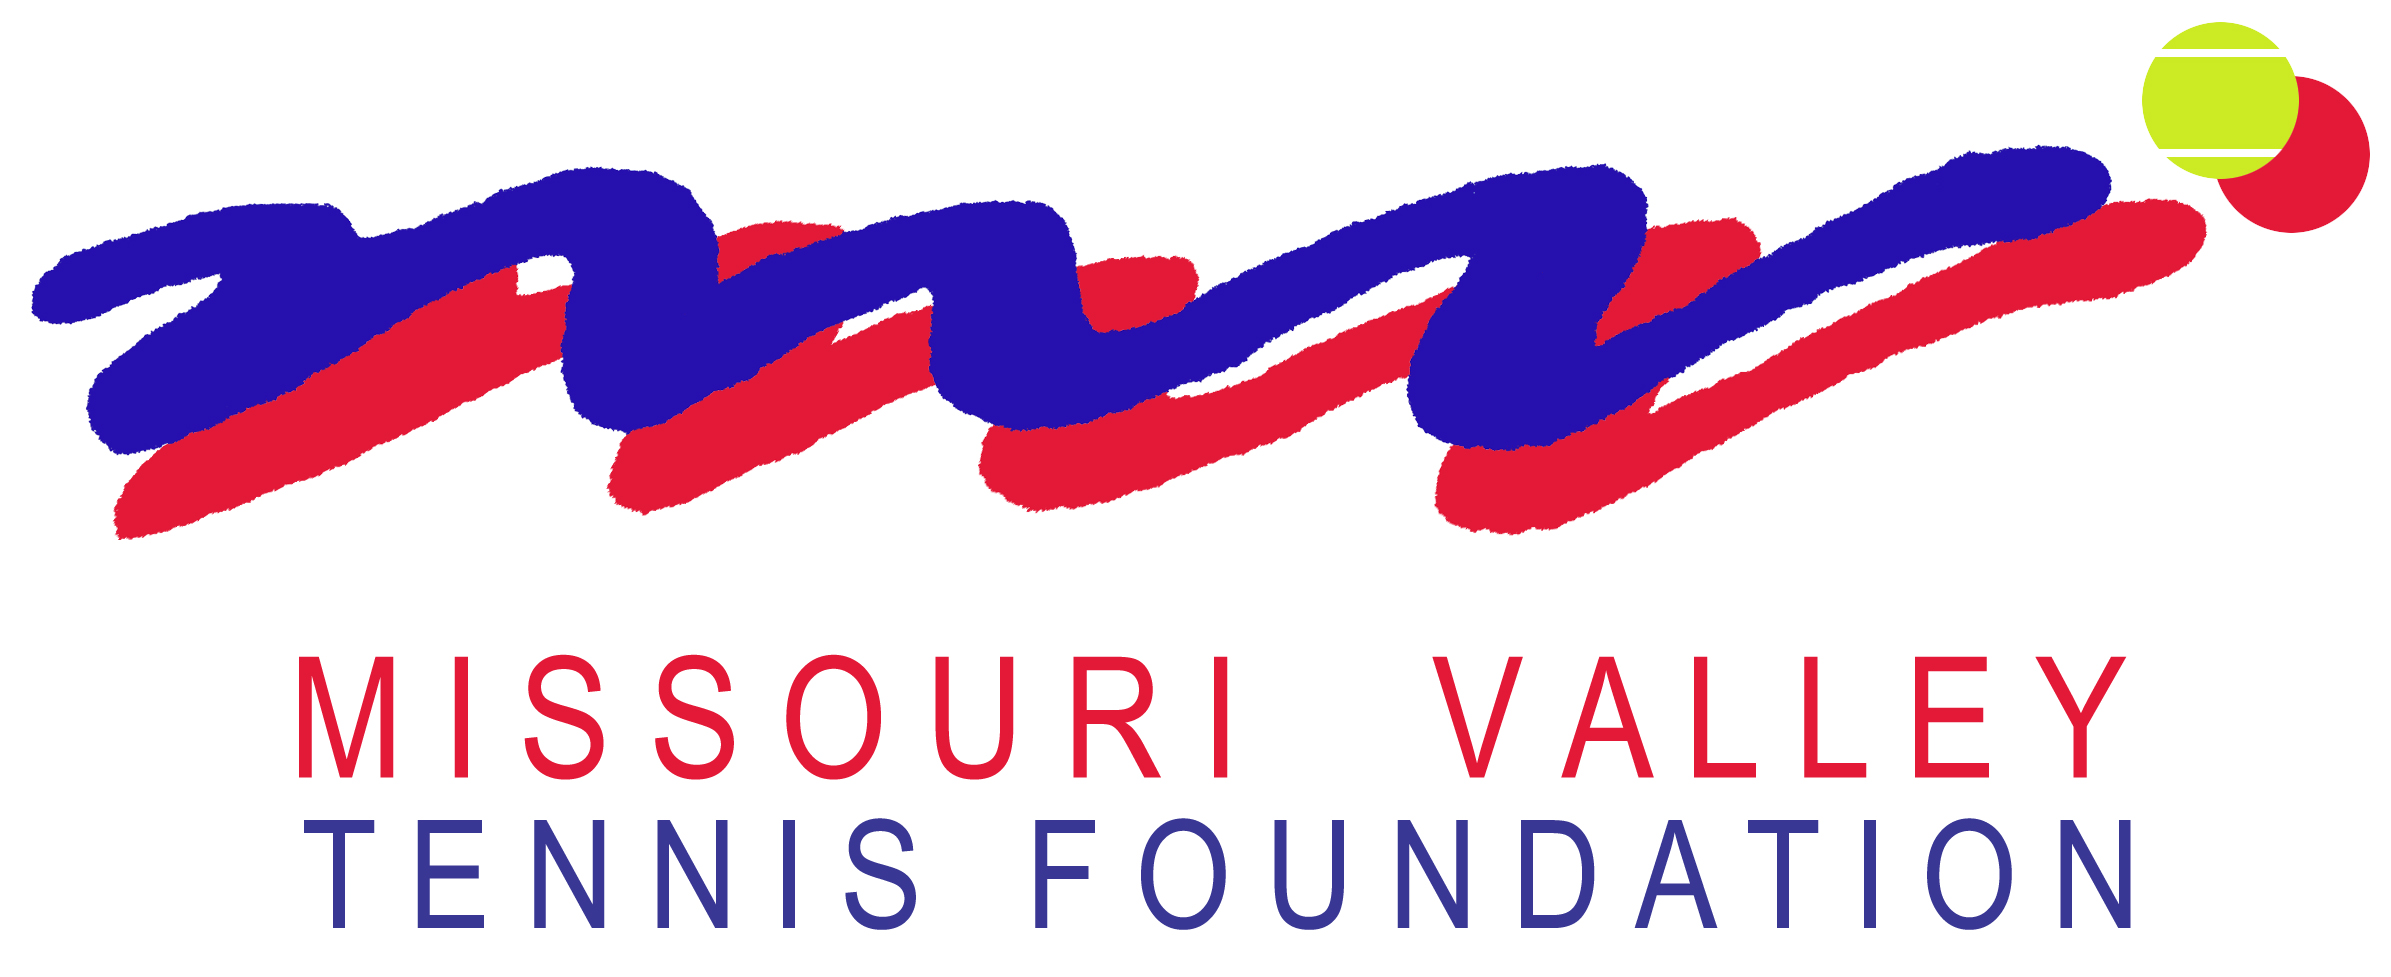 Missouri Valley Tennis Foundation